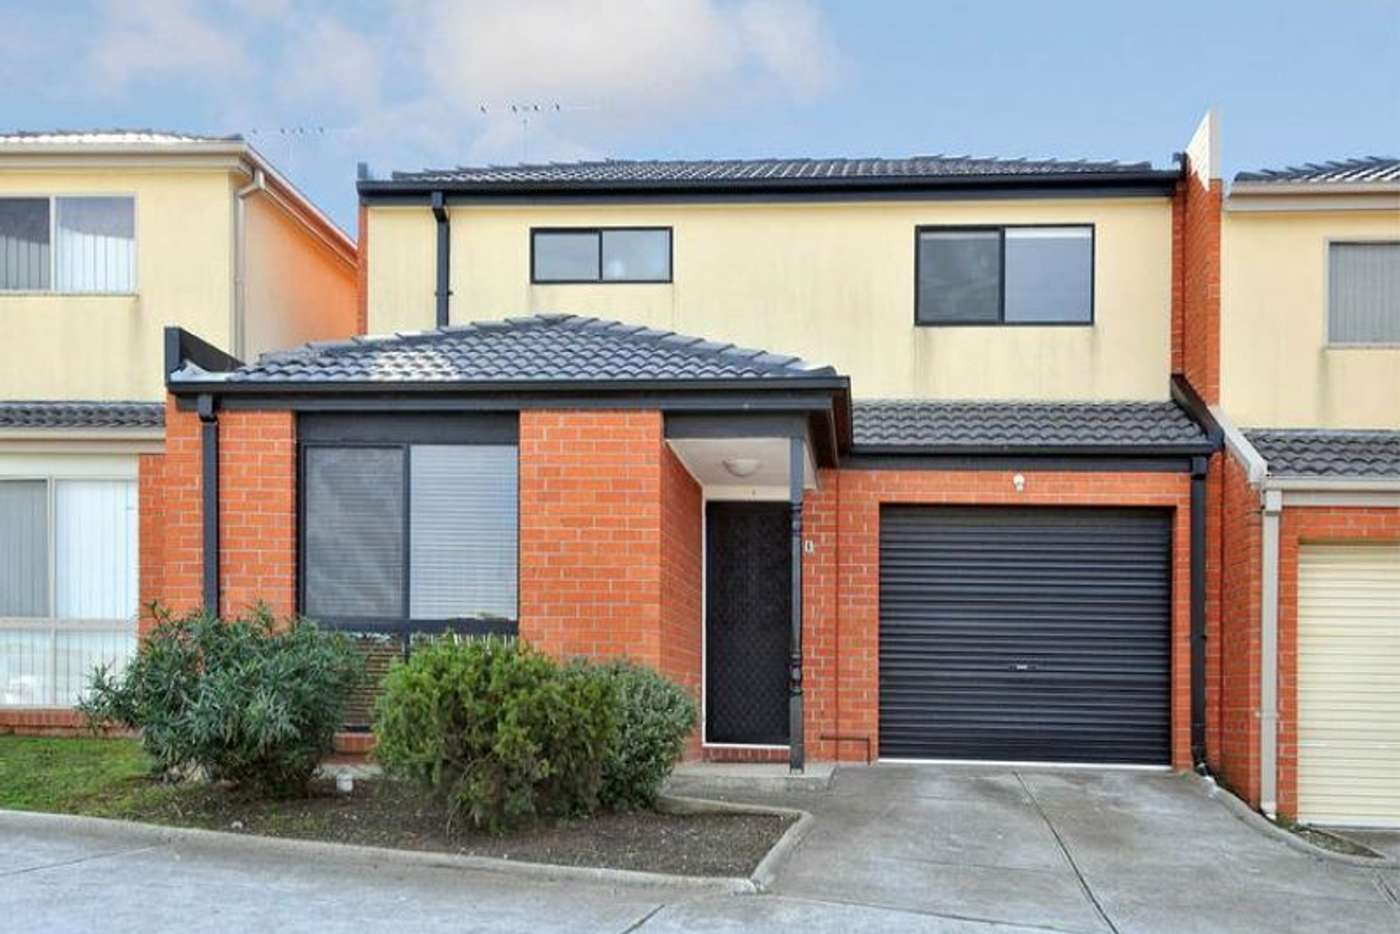 Main view of Homely townhouse listing, 6/7 TOPAZ PLACE, St Albans VIC 3021